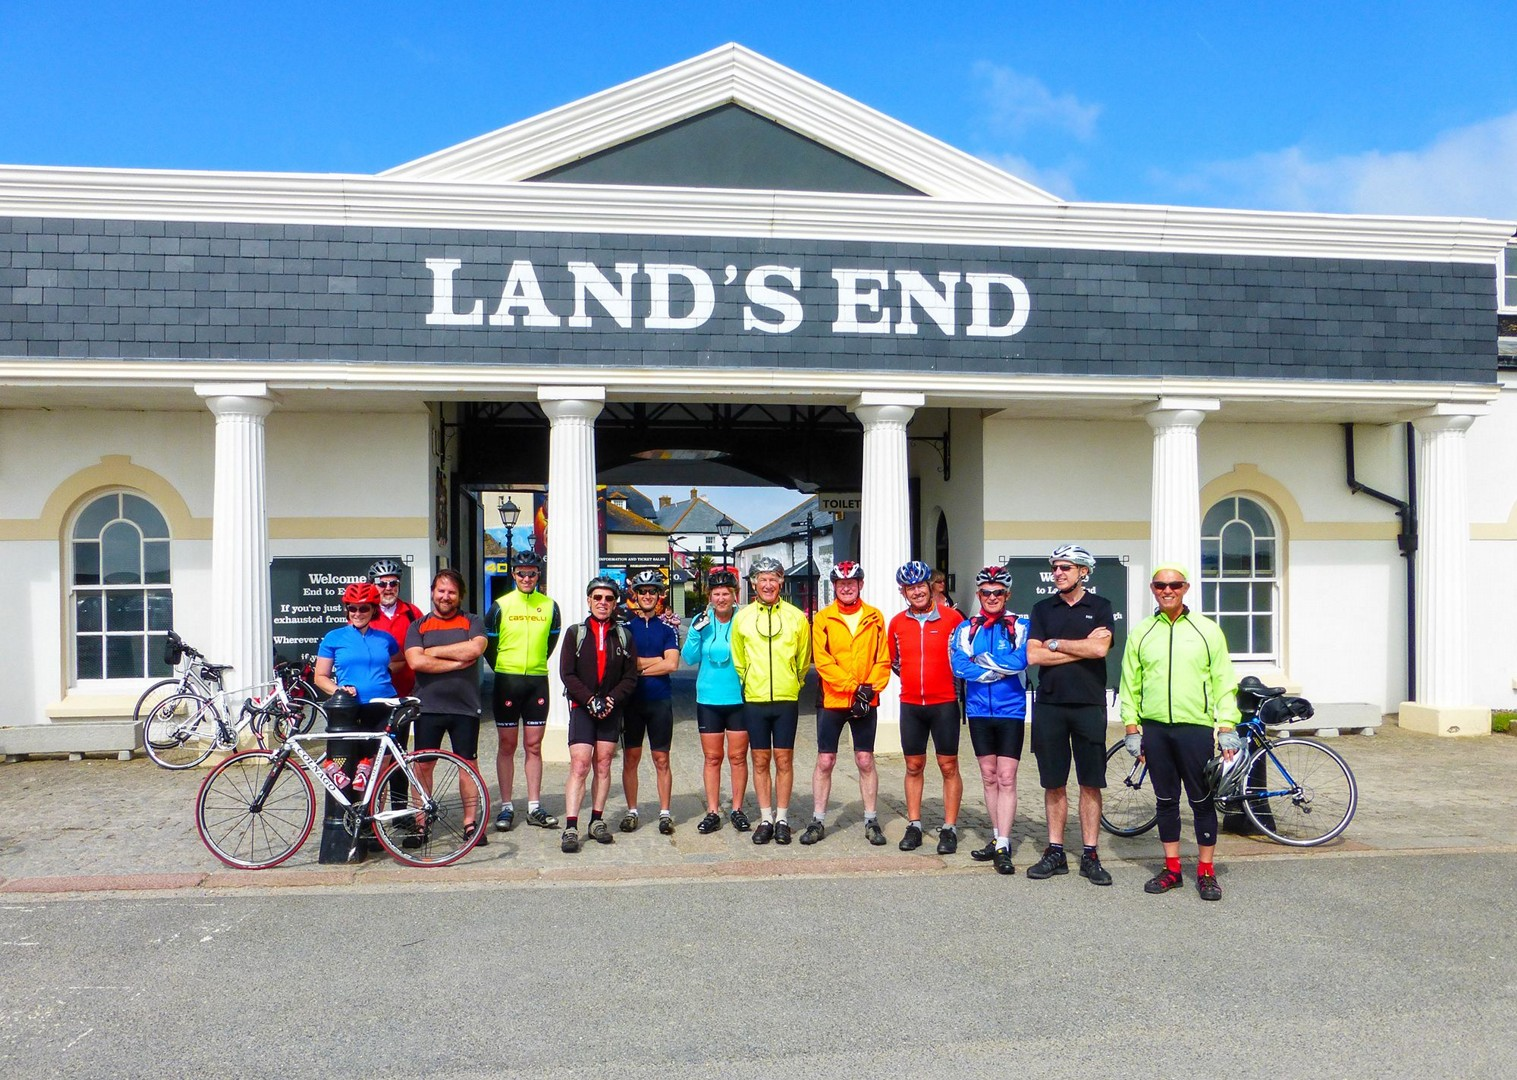 cycling-holiday-in-the-uk-guided-trip-with-saddle-skedaddle-lejog-16-day.jpg - UK - Land's End to John O'Groats Classic (16 days) - Guided Road Cycling Holiday - Road Cycling